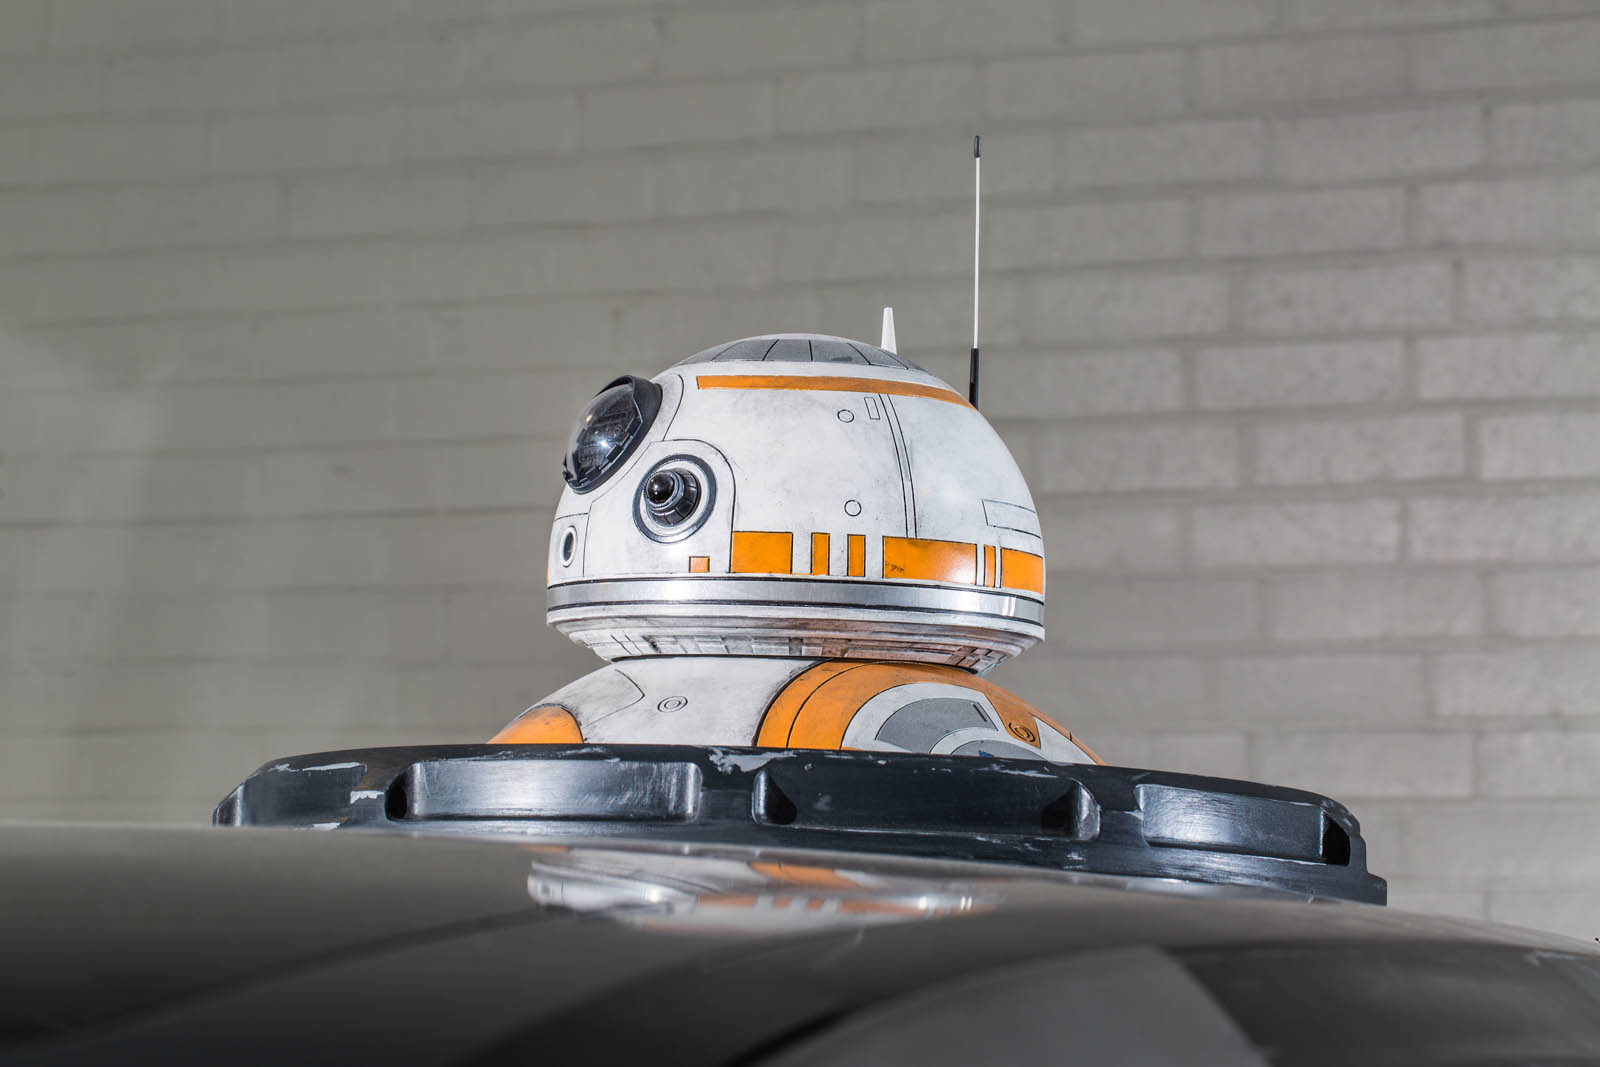 Poe Dameron's X-wing leads the New Republic starfleet, with massive fixed wings spanning either side of its Nissan Rogue foundation. Sitting atop the craft is a full-size BB-8 astromech droid with functioning lights, motion and sound.